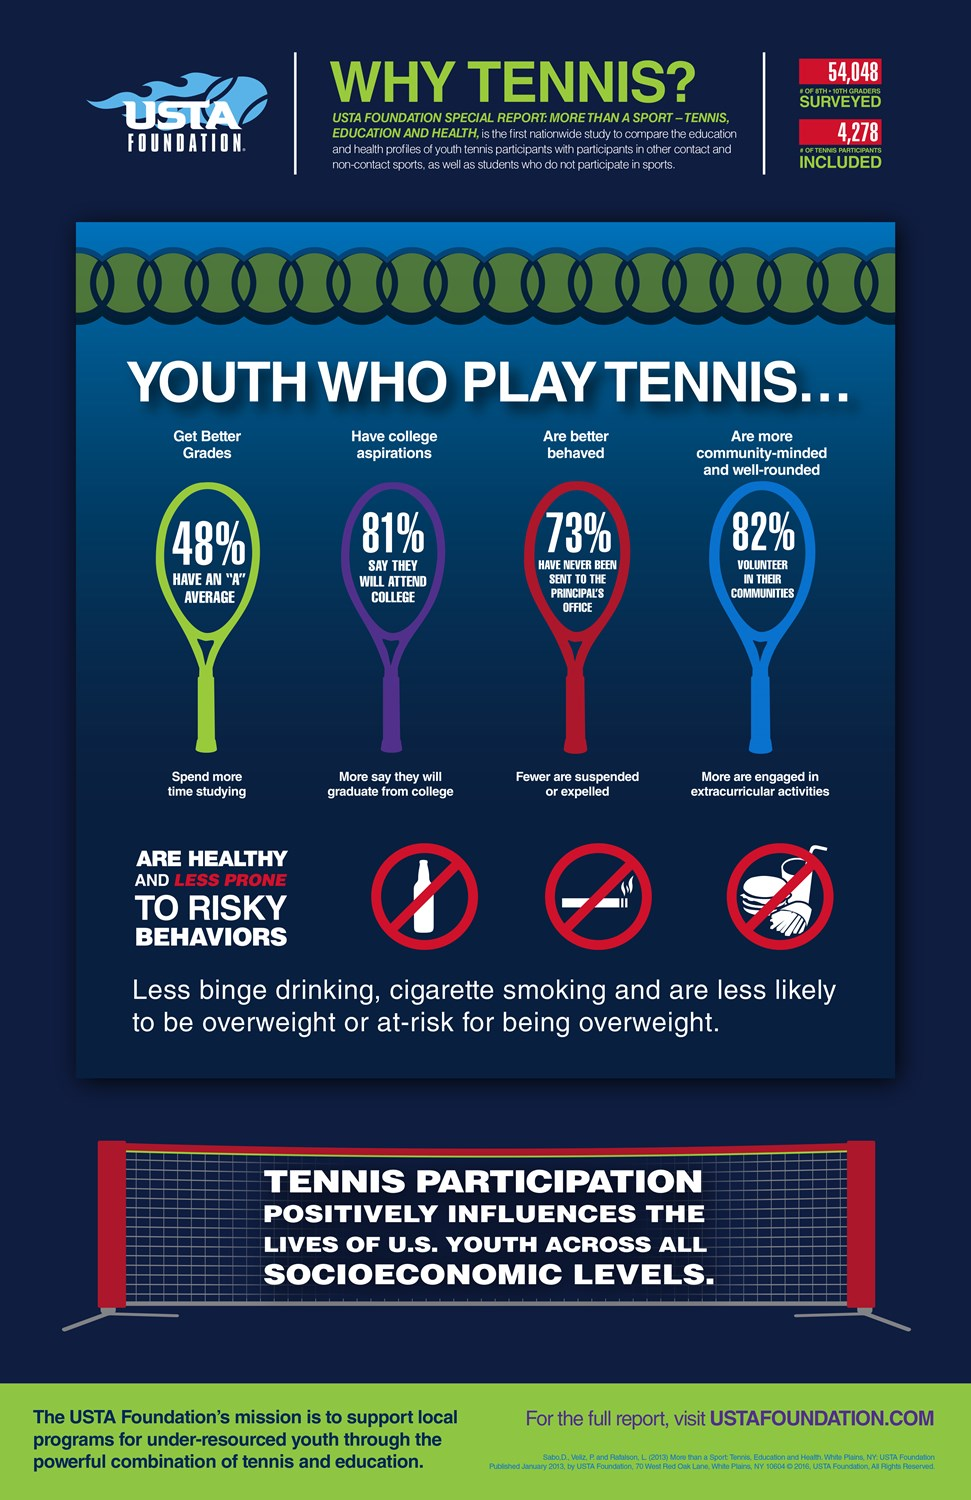 Why Tennis? - The USTA Foundation commissioned a study of over 54,000 8th - 10th grade students (tennis players, athletes of other sports, and non-athletes), and the results are in!As our name TennisWorks suggests, participation in tennis plays a key role in helping youth succeed on and off the court!View the full report here.